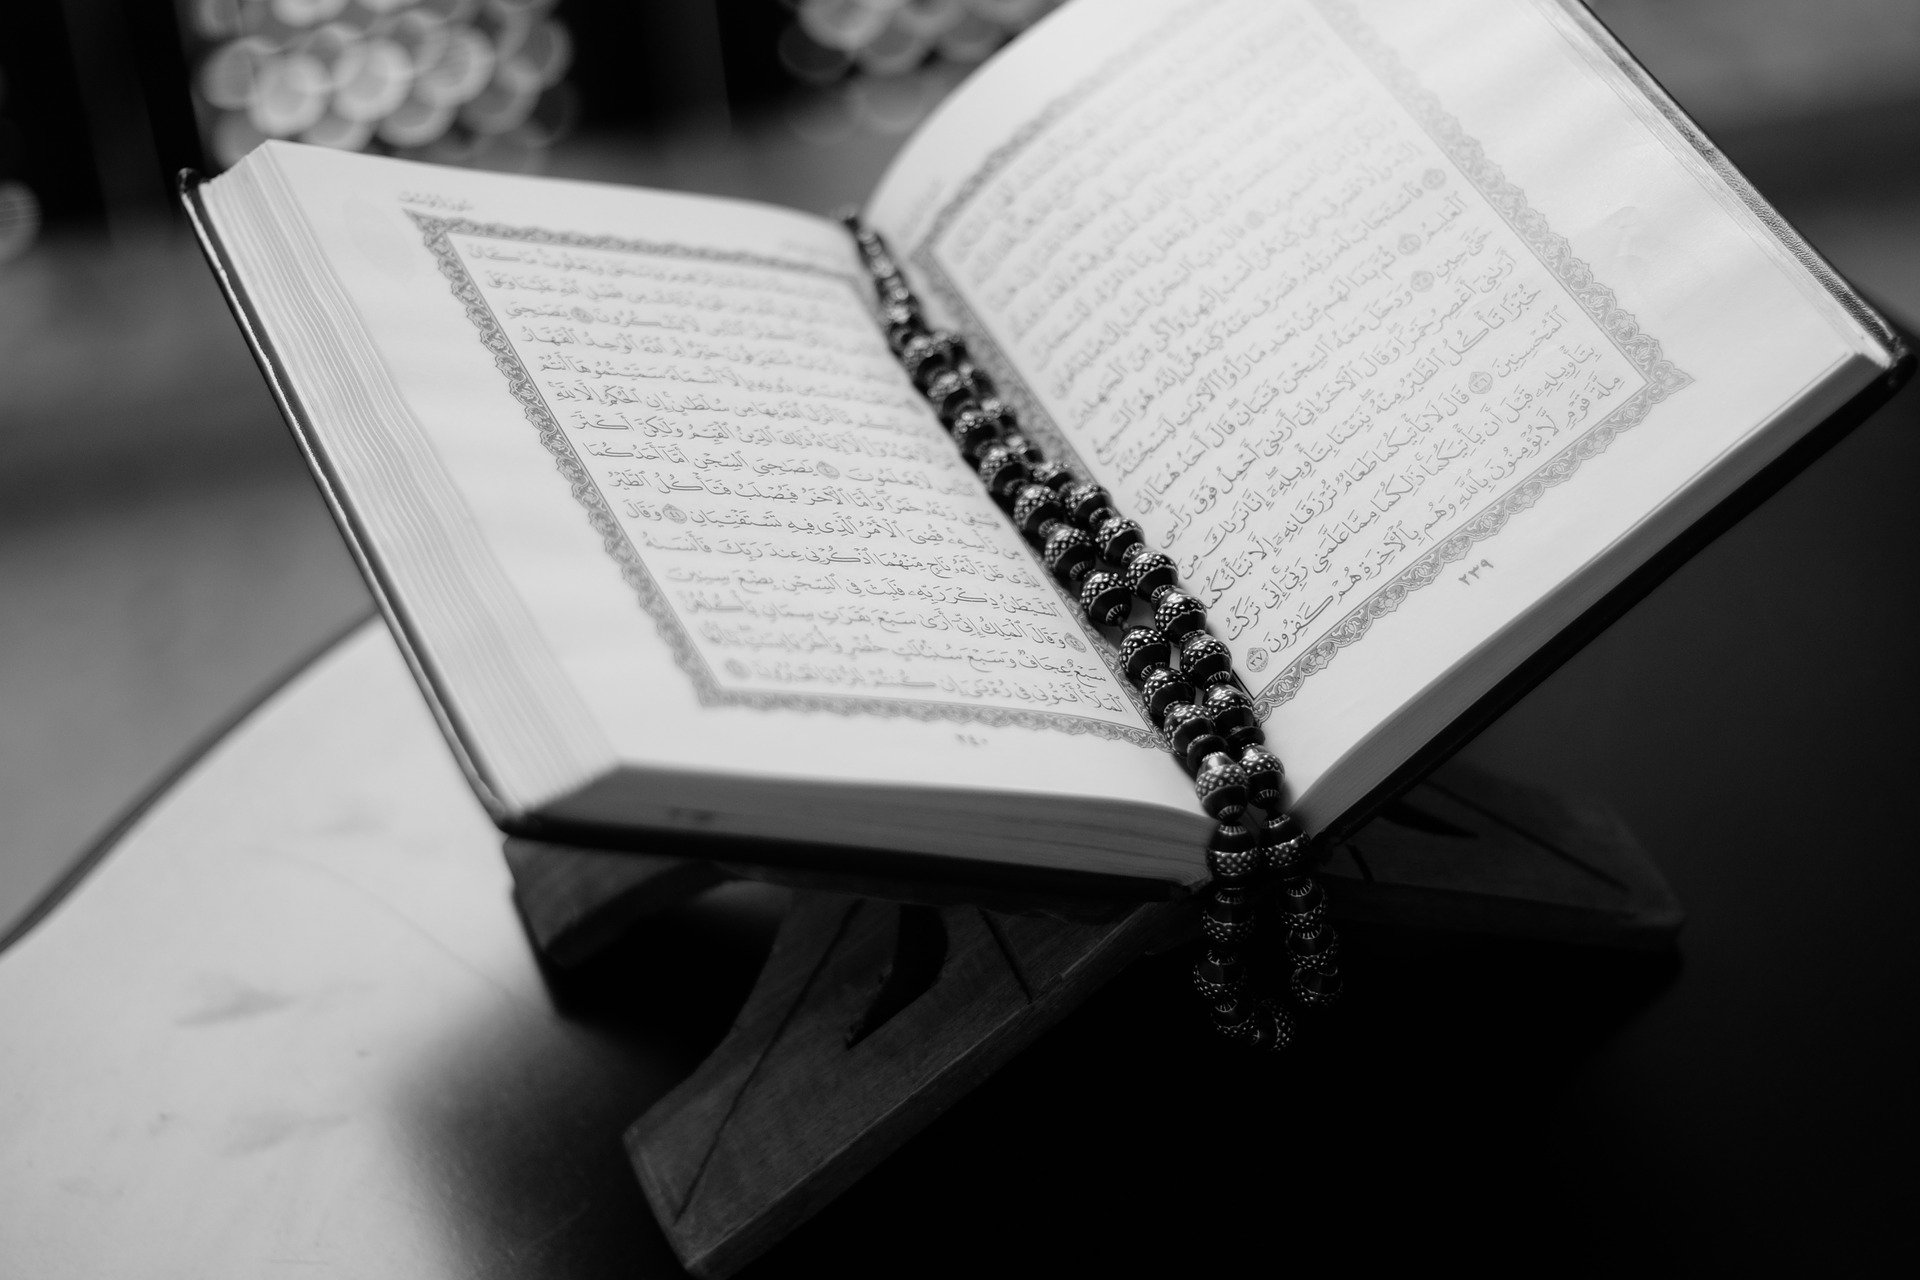 History of the Qur'an (Part 1)